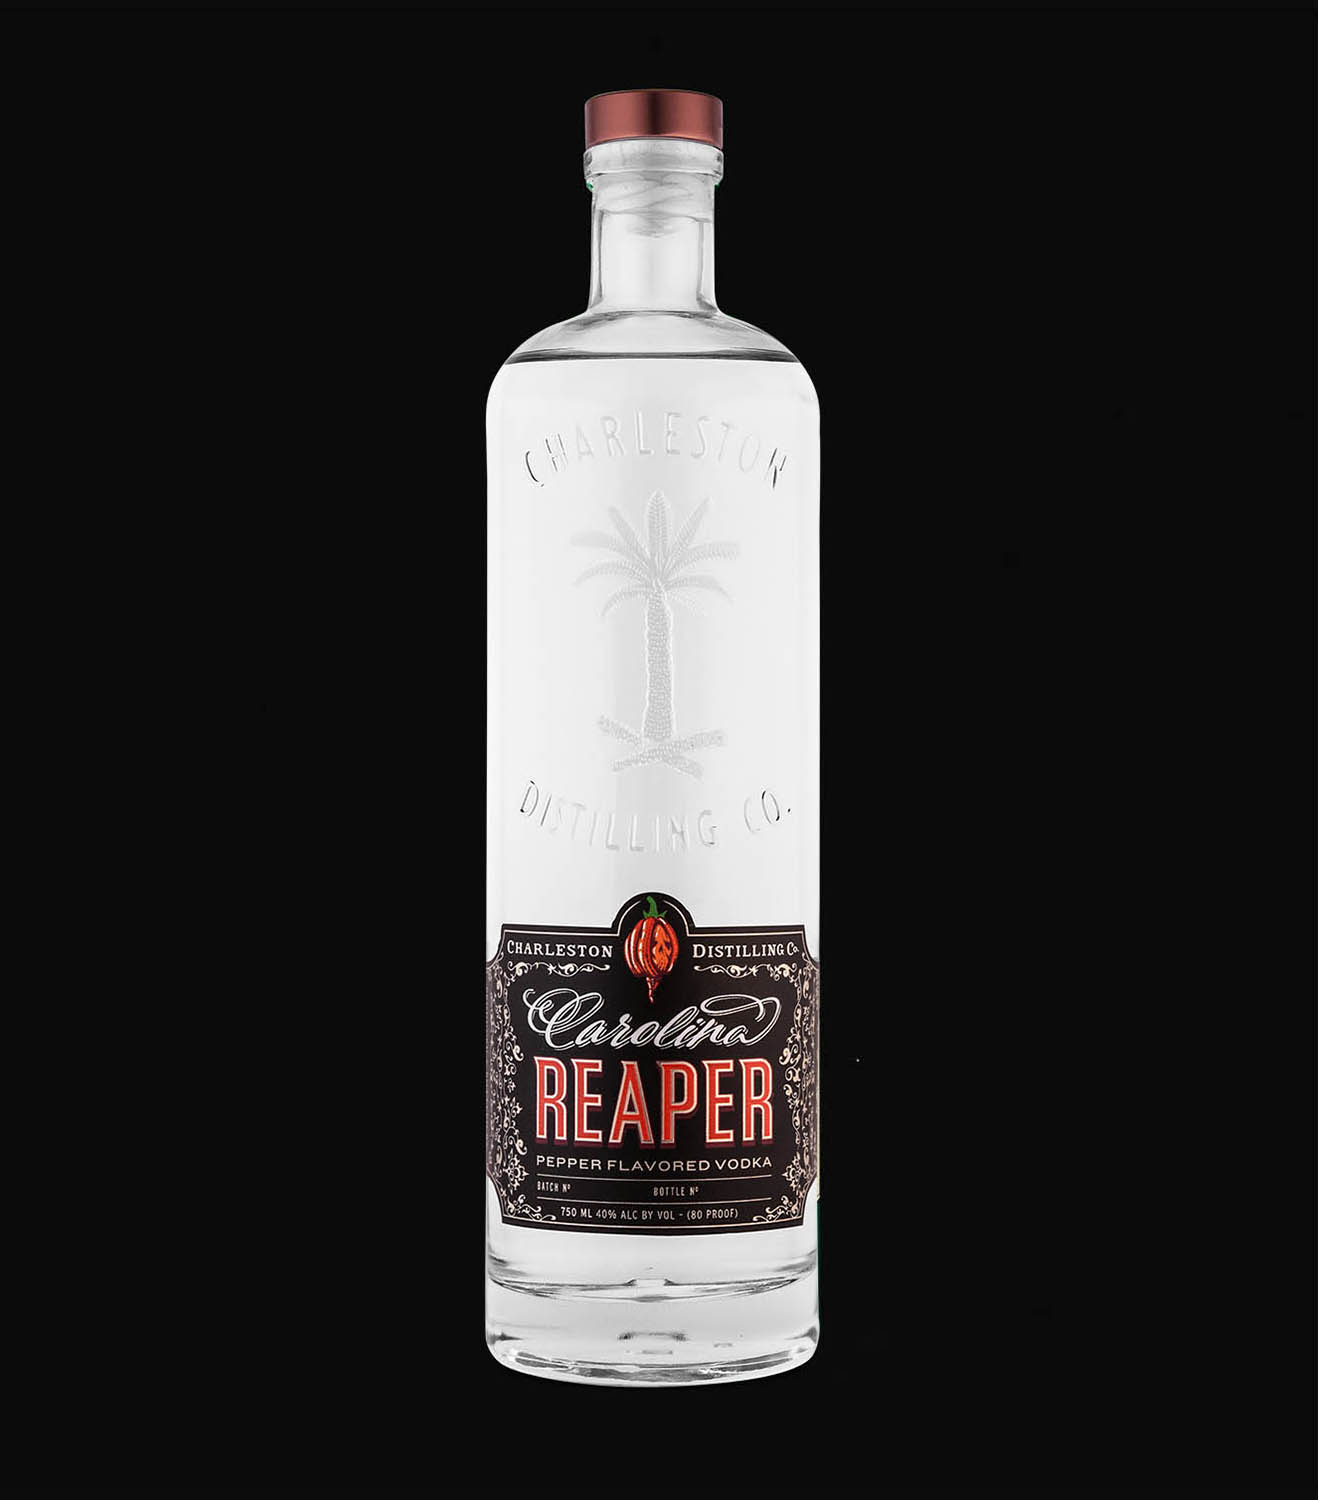 Carolina Reaper Pepper Vodka - 100% corn vodka macerated with dried Carolina Reaper Peppers, the current spiciest pepper in the world. Coming from upstate South Carolina, this pepper is a hybrid of the Red Habanero and Ghost Pepper. The rich sweetness from the corn is quickly cut with a sharp, slightly lingering spice. Brace Yourself.80 Proof